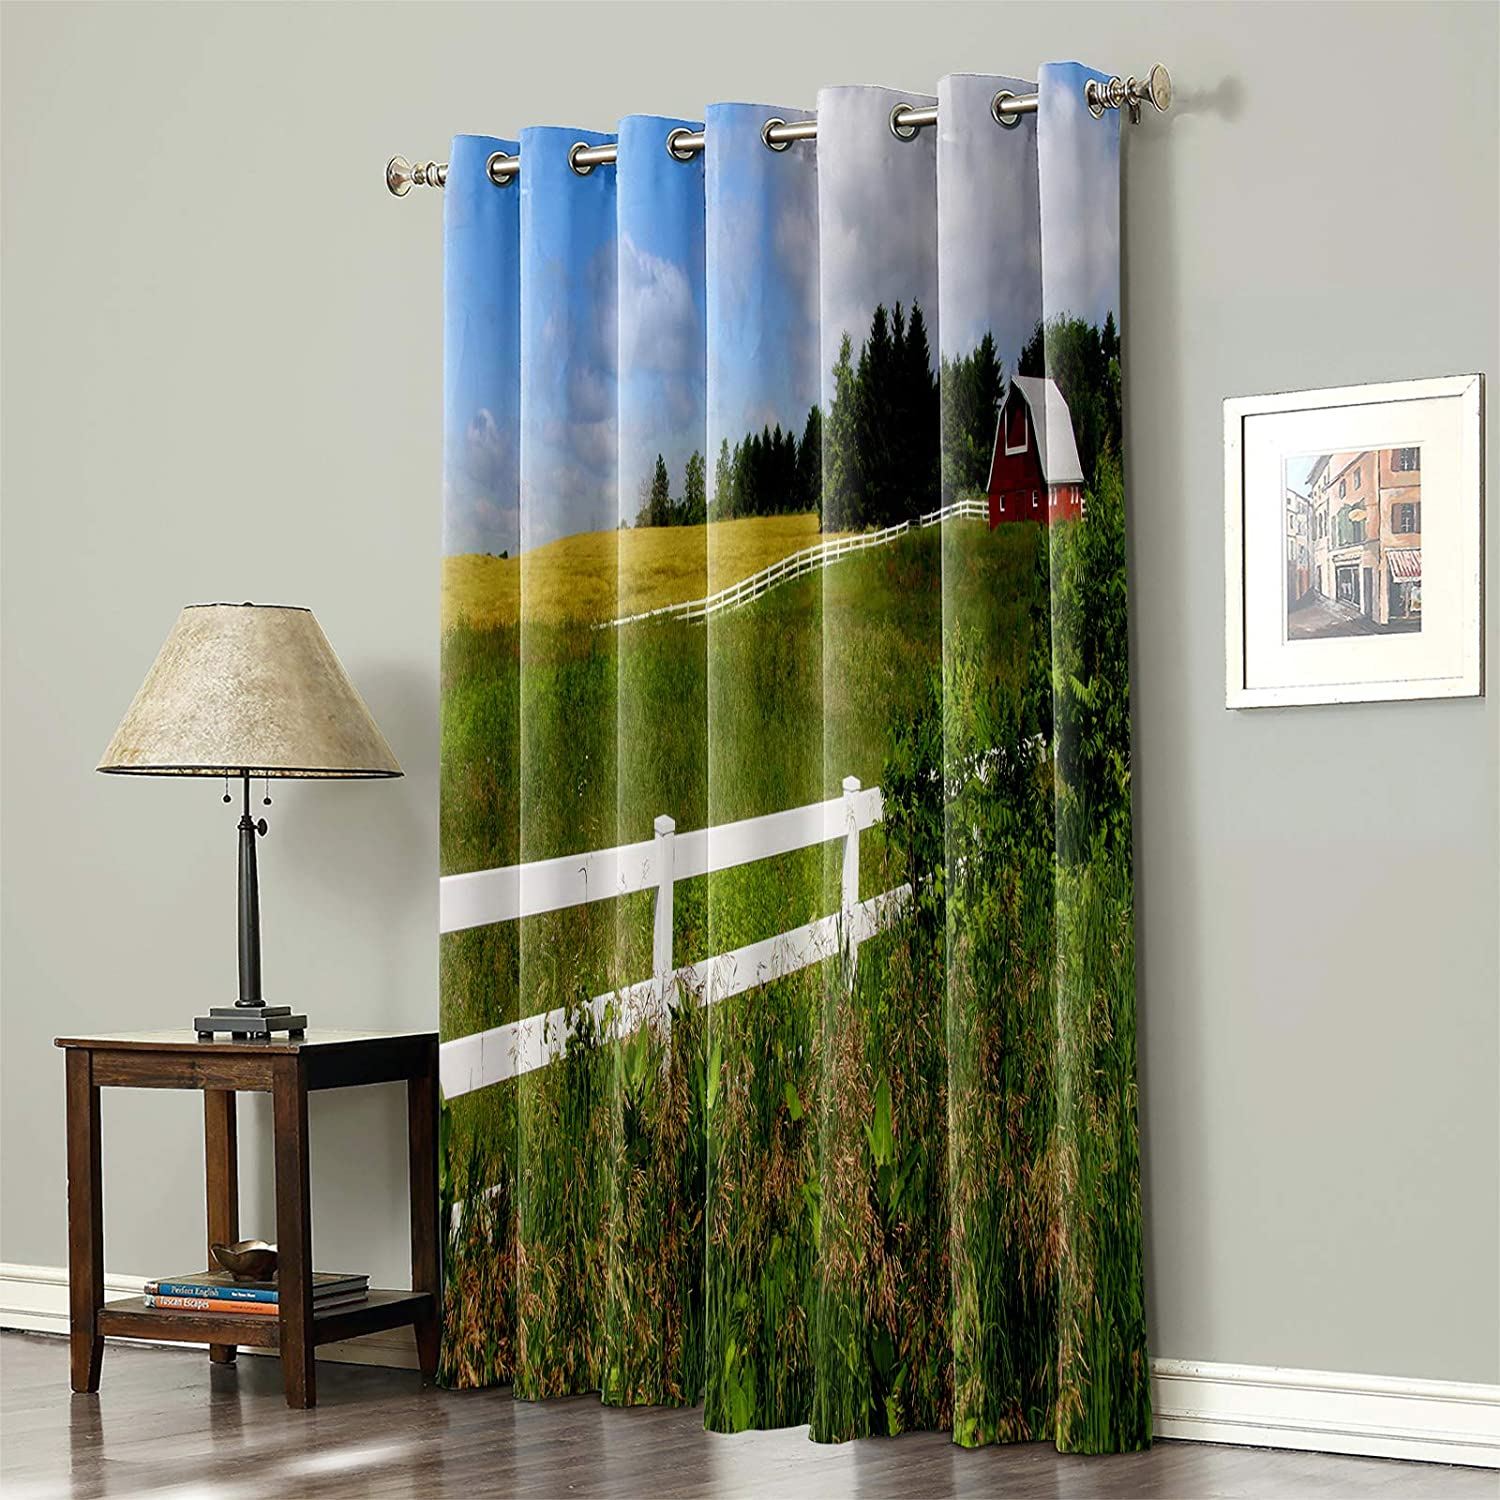 Blackout Curtain for Bedroom Farm Red Green Grass Vast Barn For 5 ☆ very Limited Special Price popular